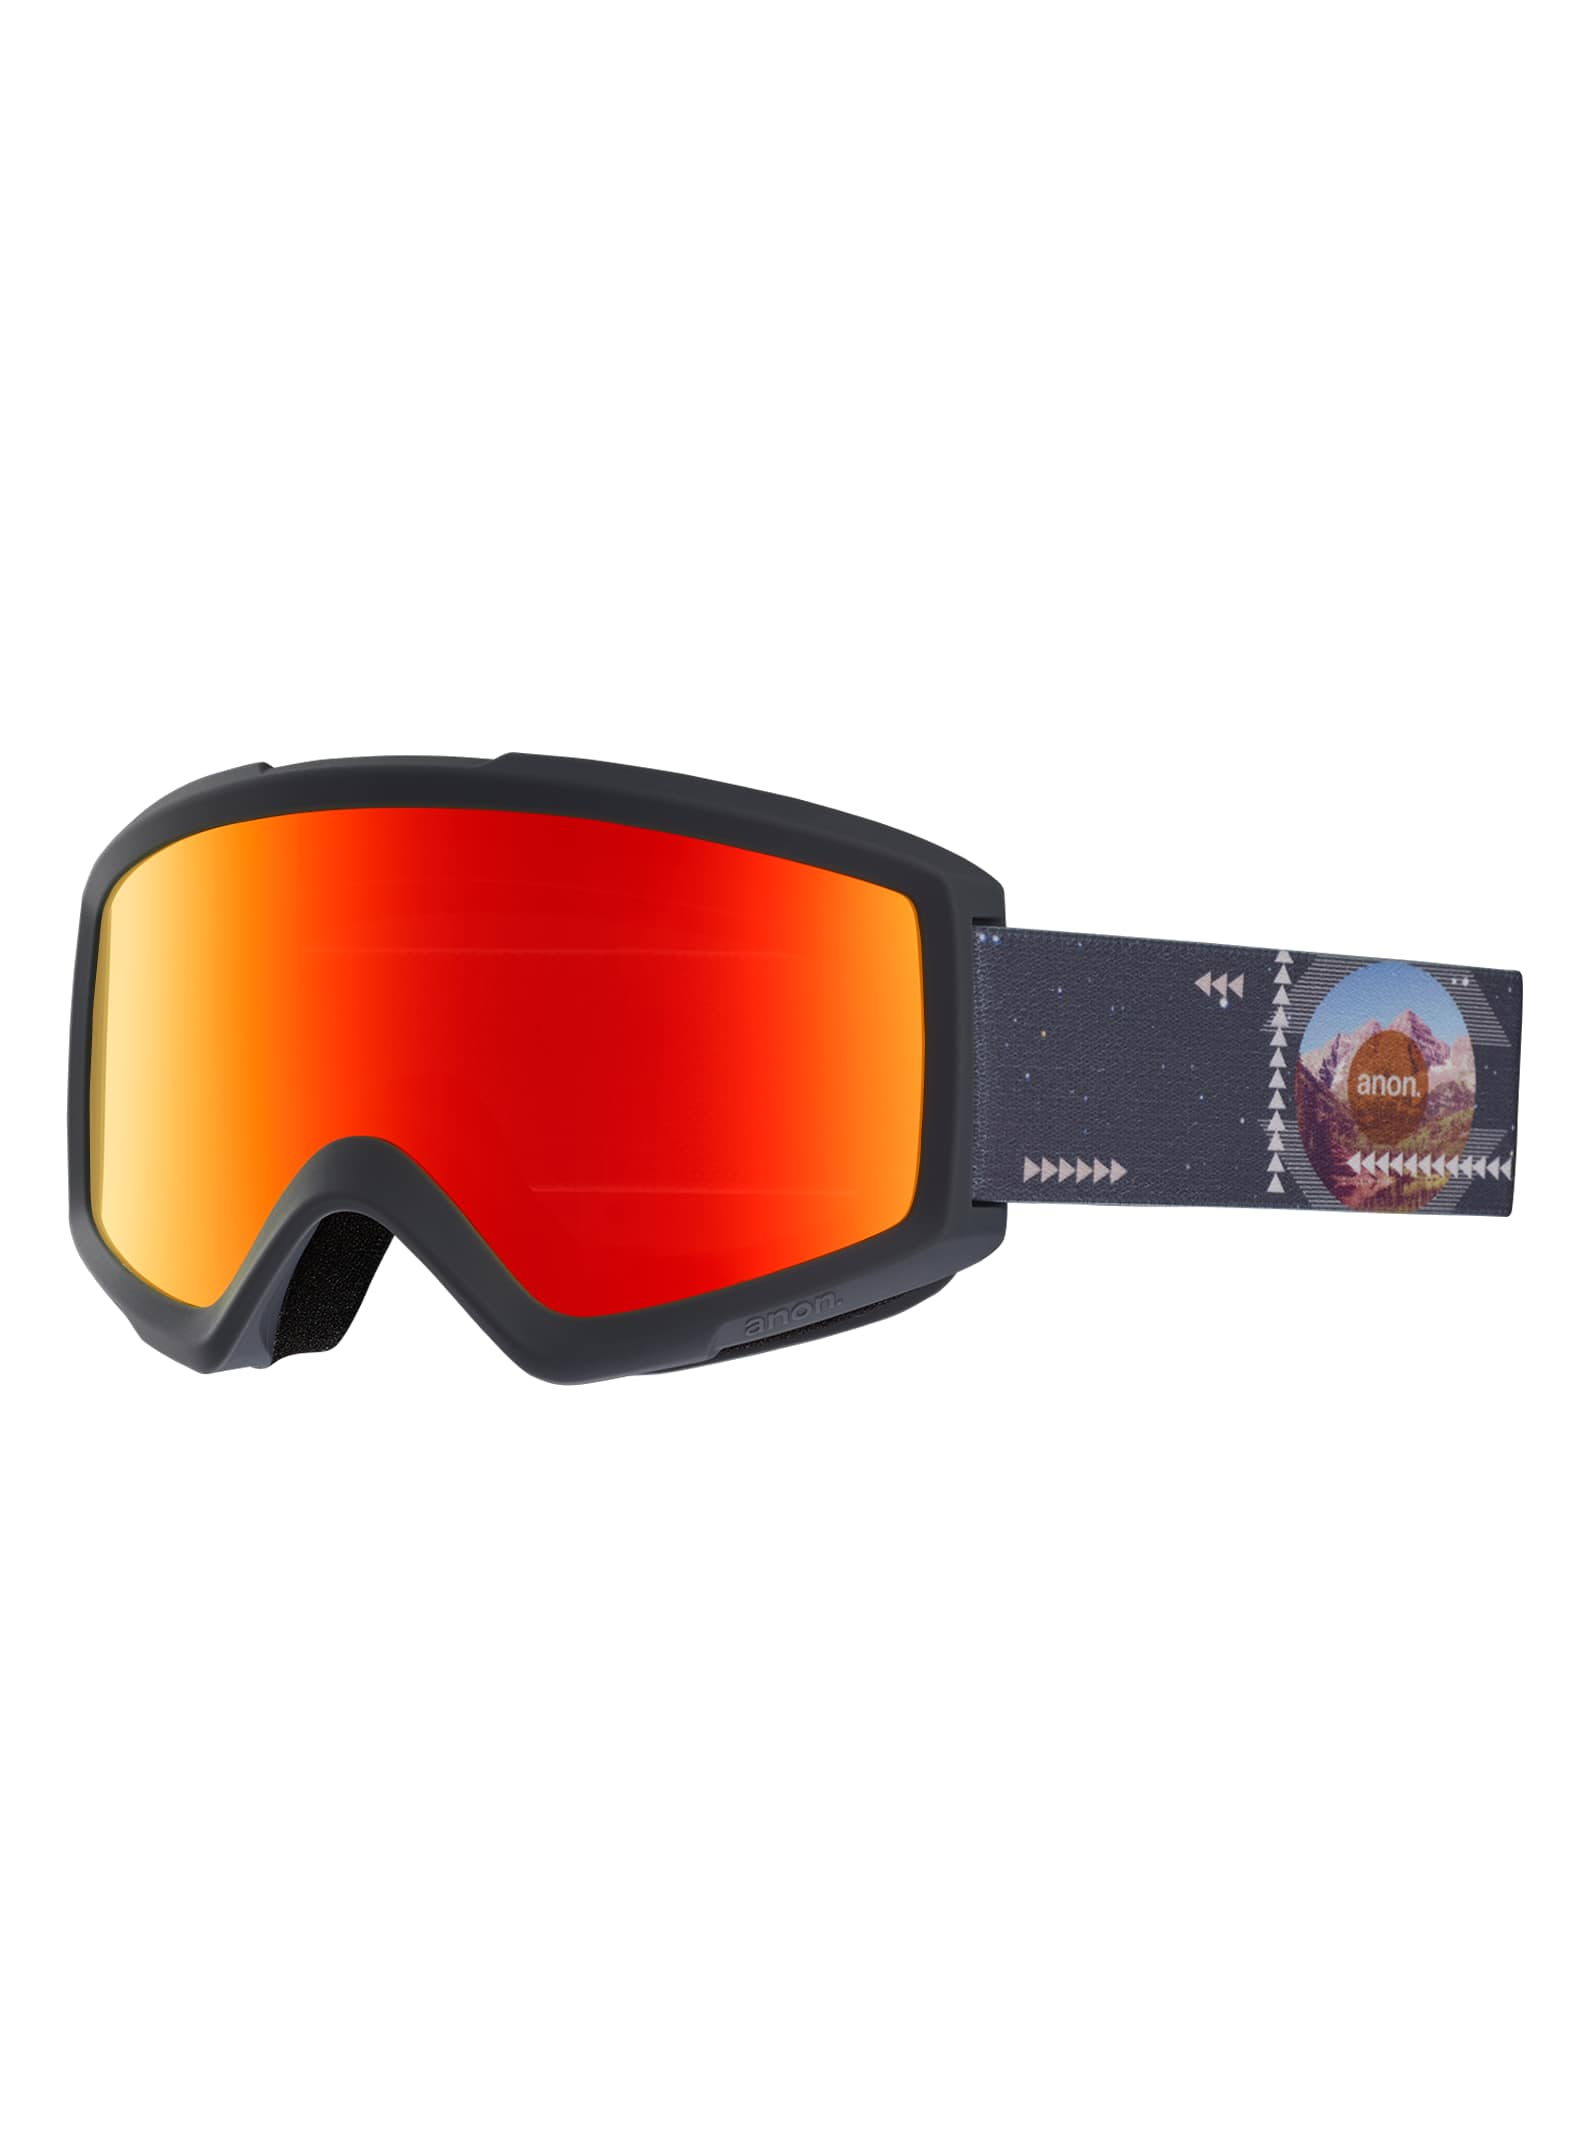 a473c2738c9f Men s Anon Helix 2.0 Goggle + Spare Lens